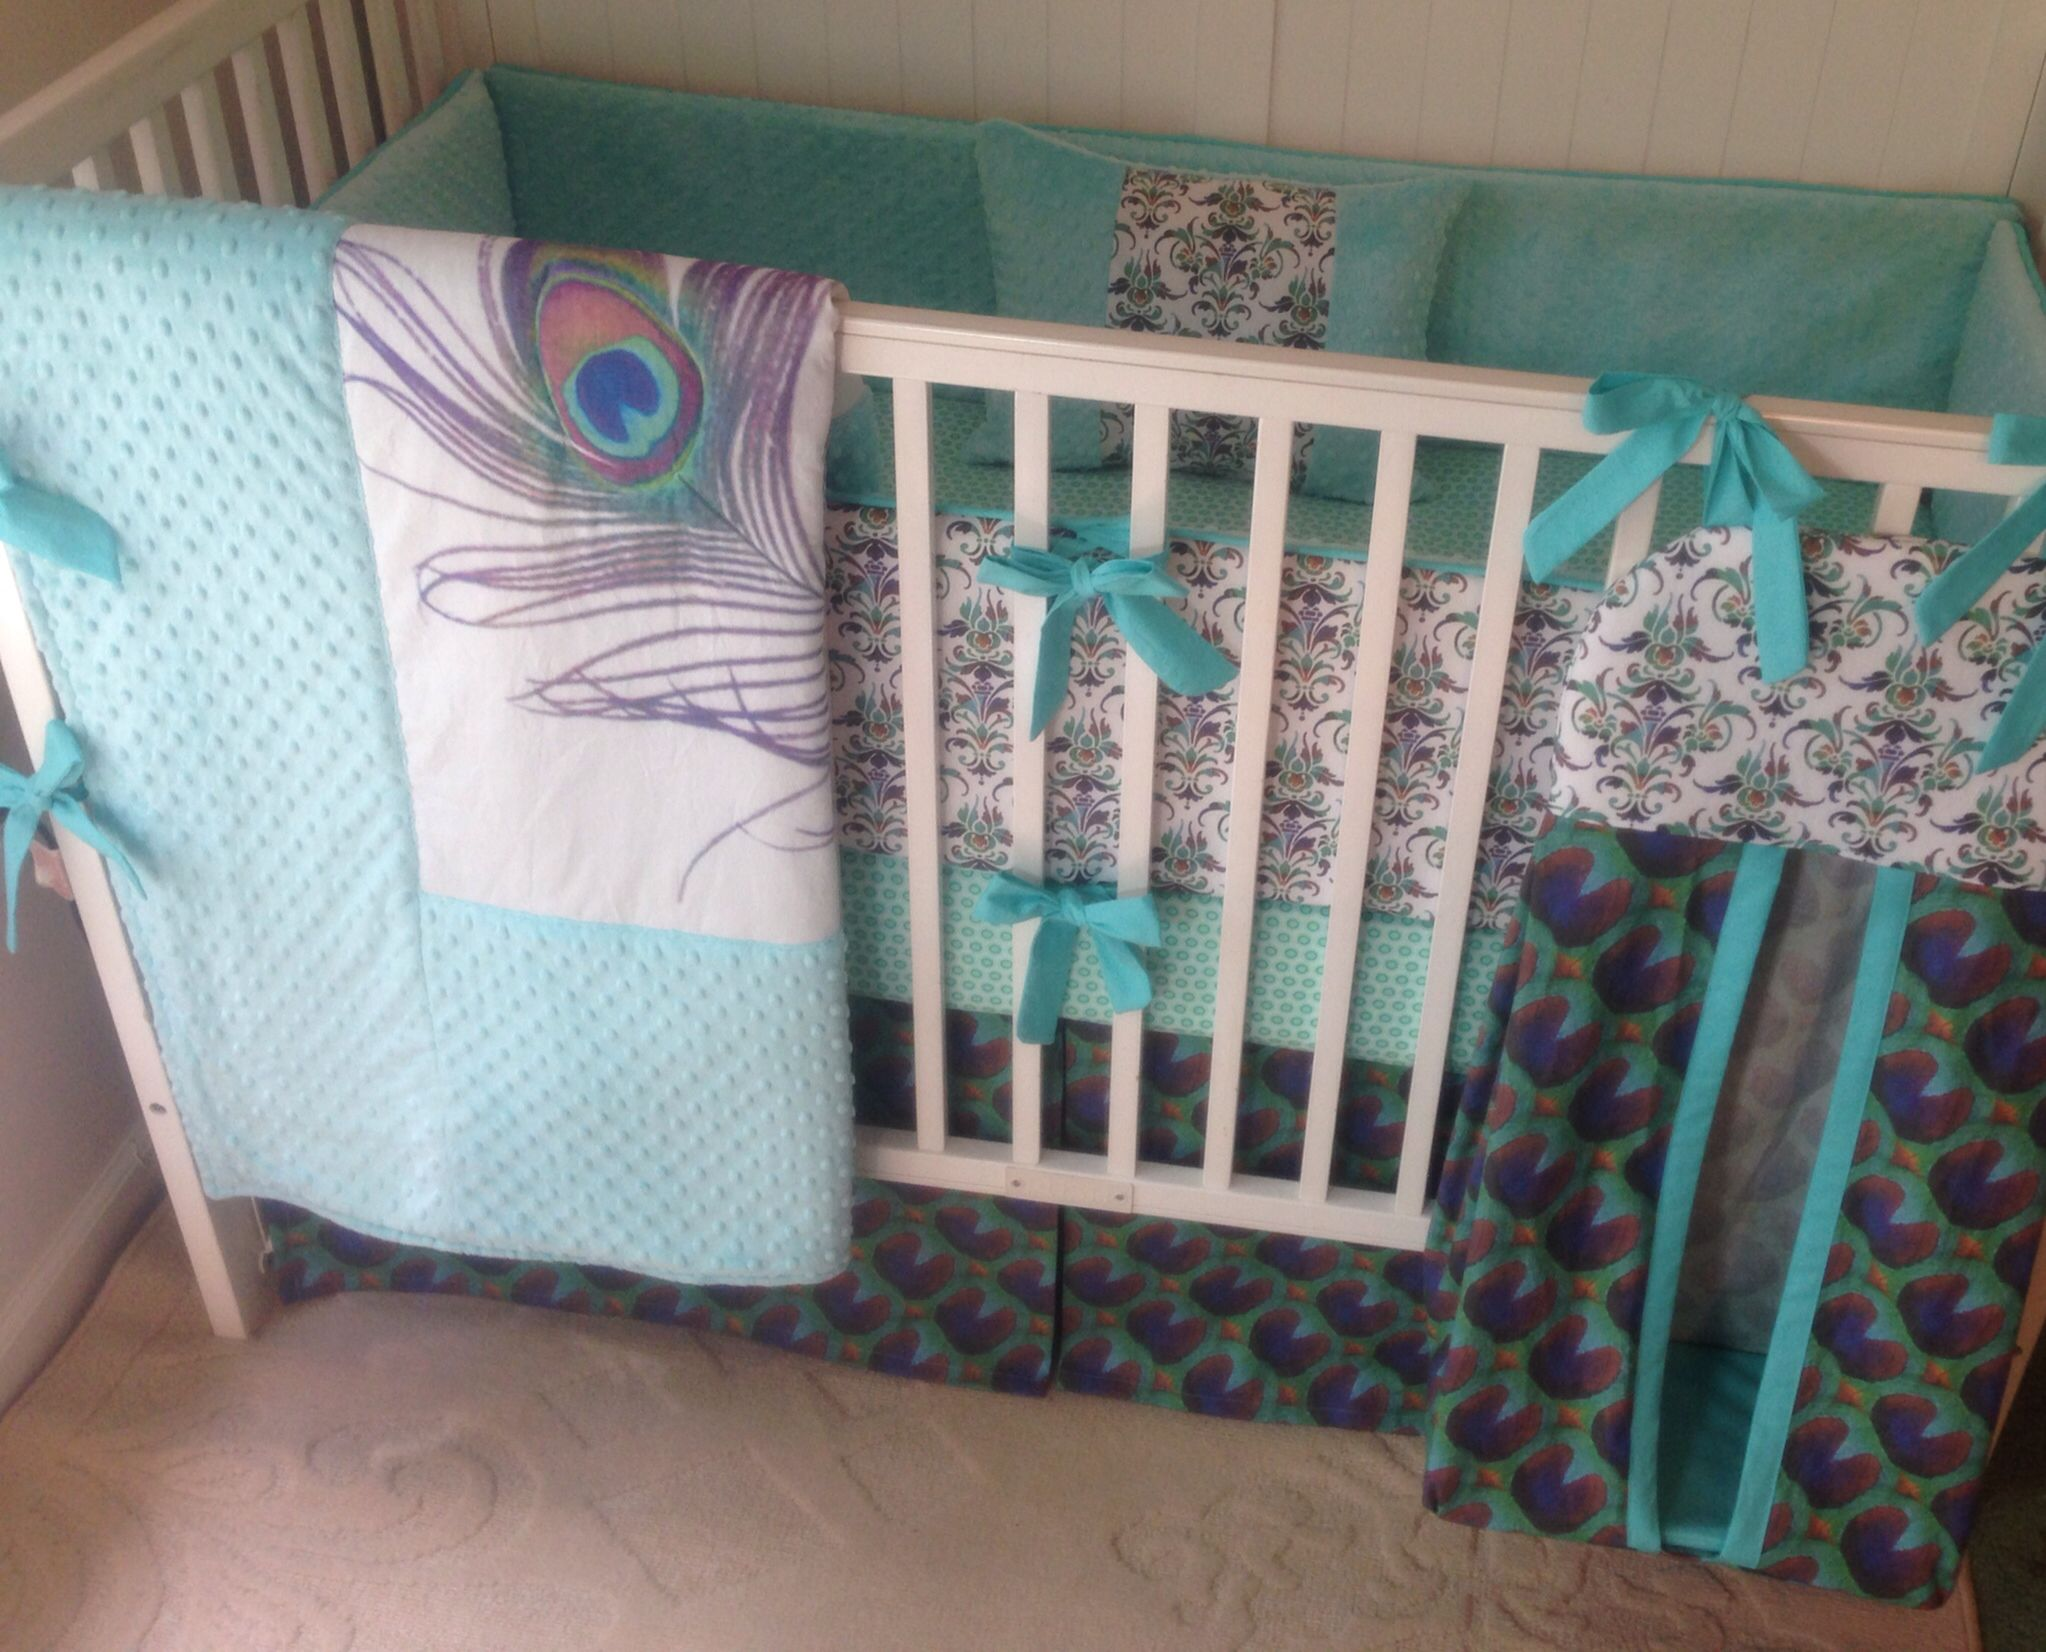 superior Peacock Baby Bedding Sets Part - 1: Pretty as a peacock crib bedding set. I just adore peacocks and their  vibrant colors! www.butterbeansboutique.etsy.com